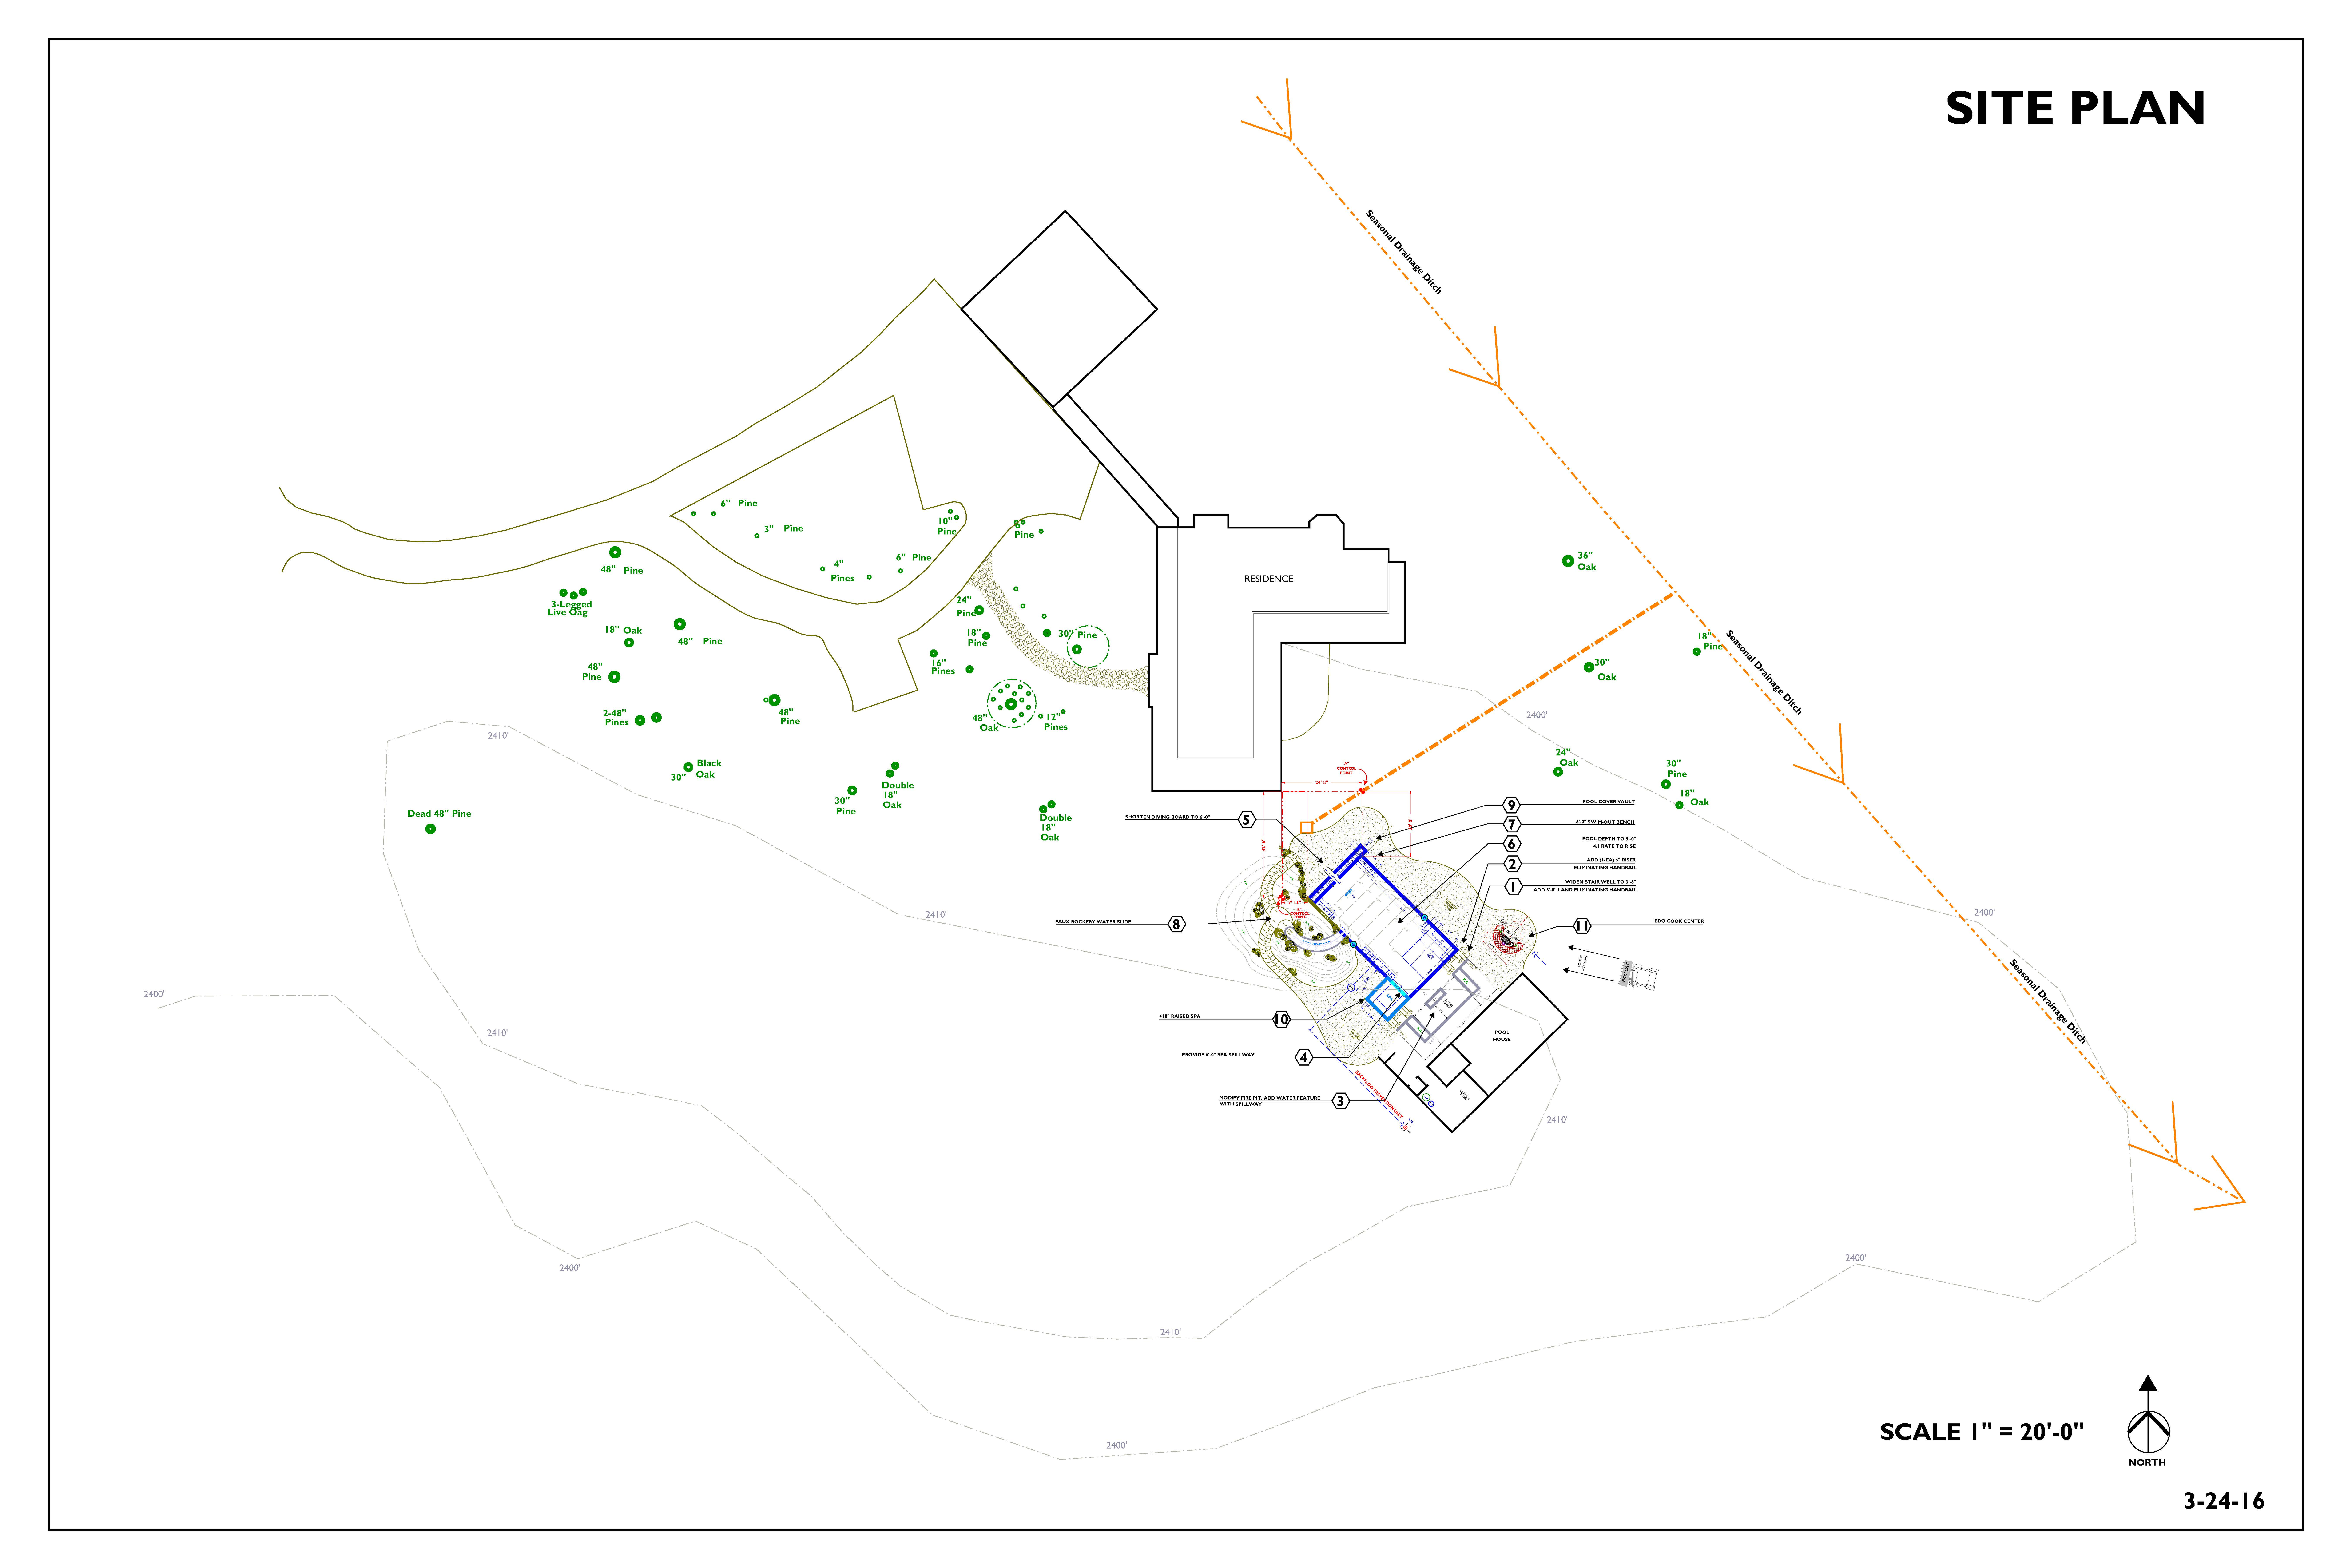 PRELIMINARY SITE PLAN - SWIMMING POOL LAYOUT